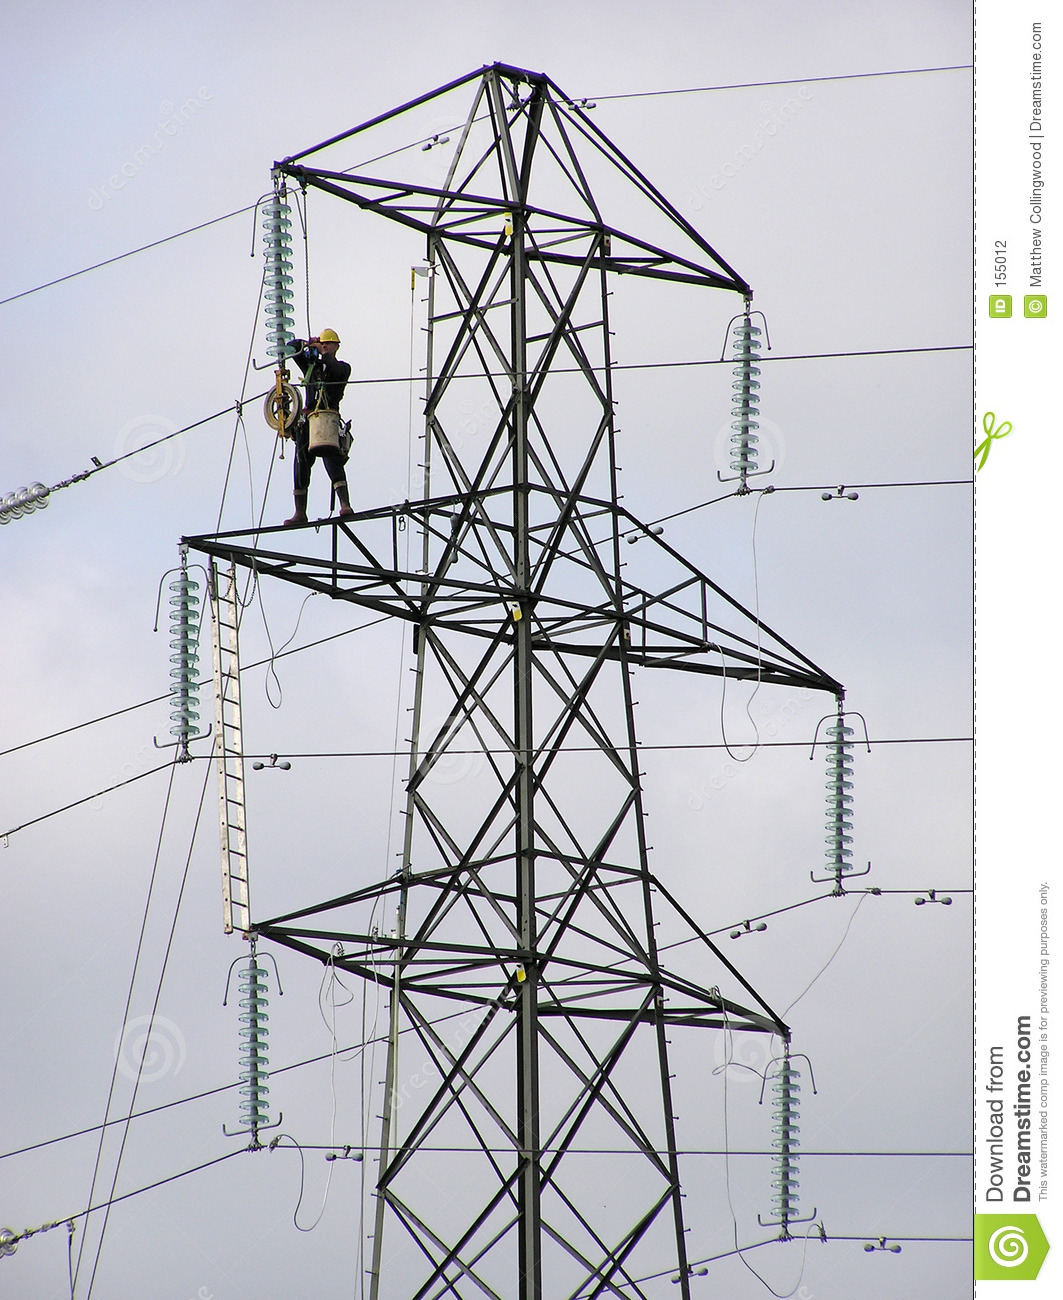 Pylon worker 2